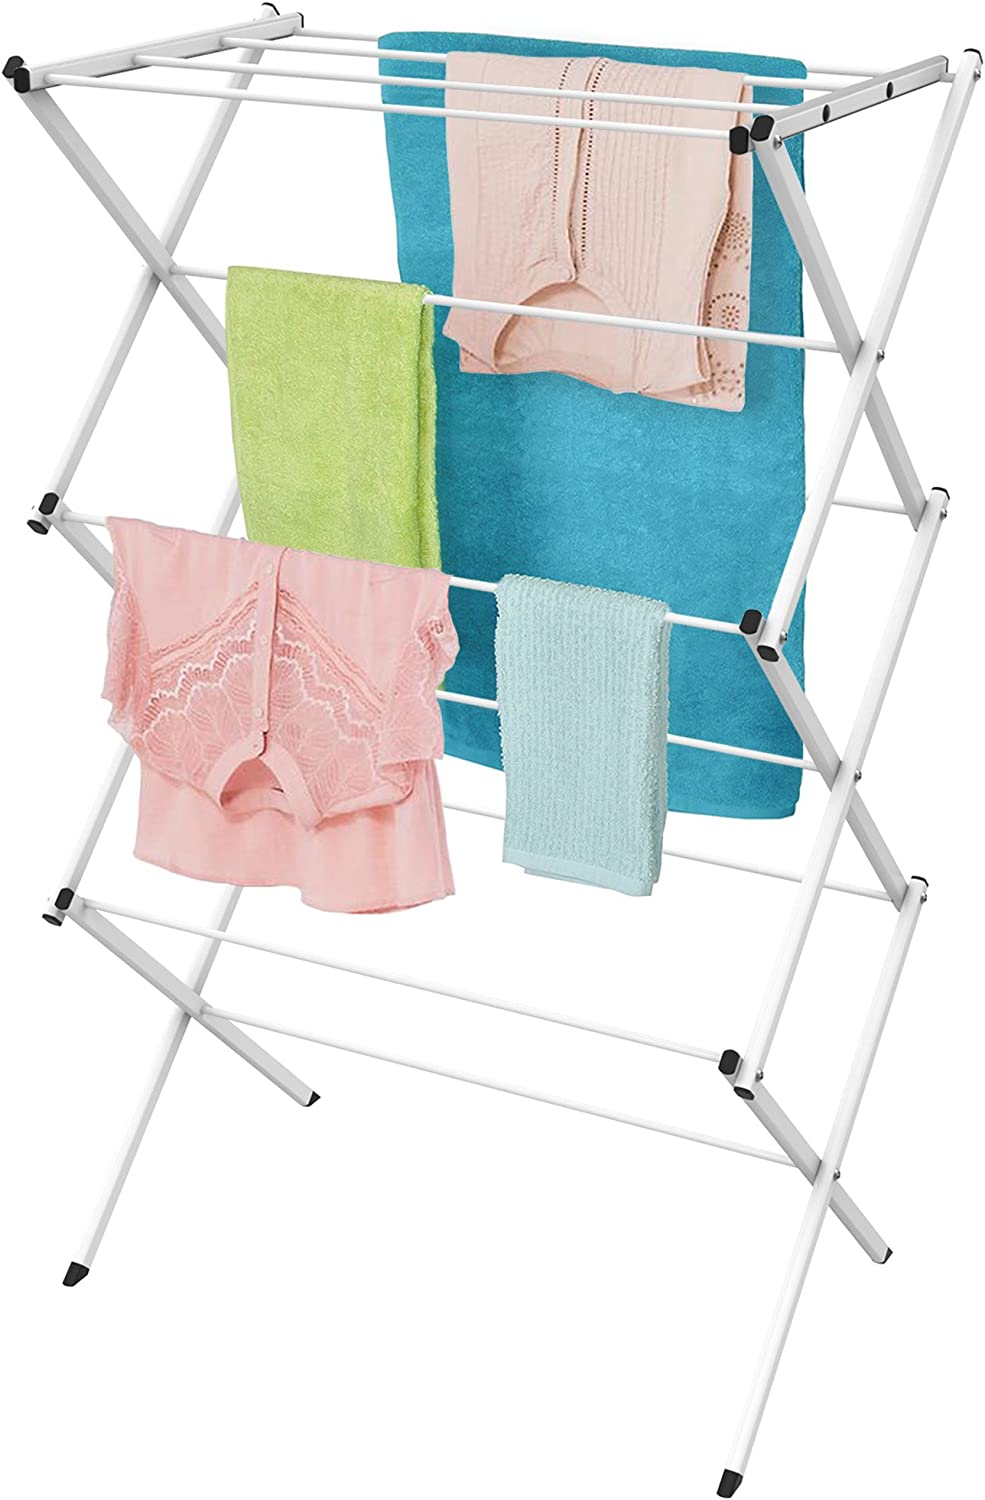 Lavish Home Max 78% OFF Clothes Rack-24ft for Compact Max 84% OFF and Space-Collapsible